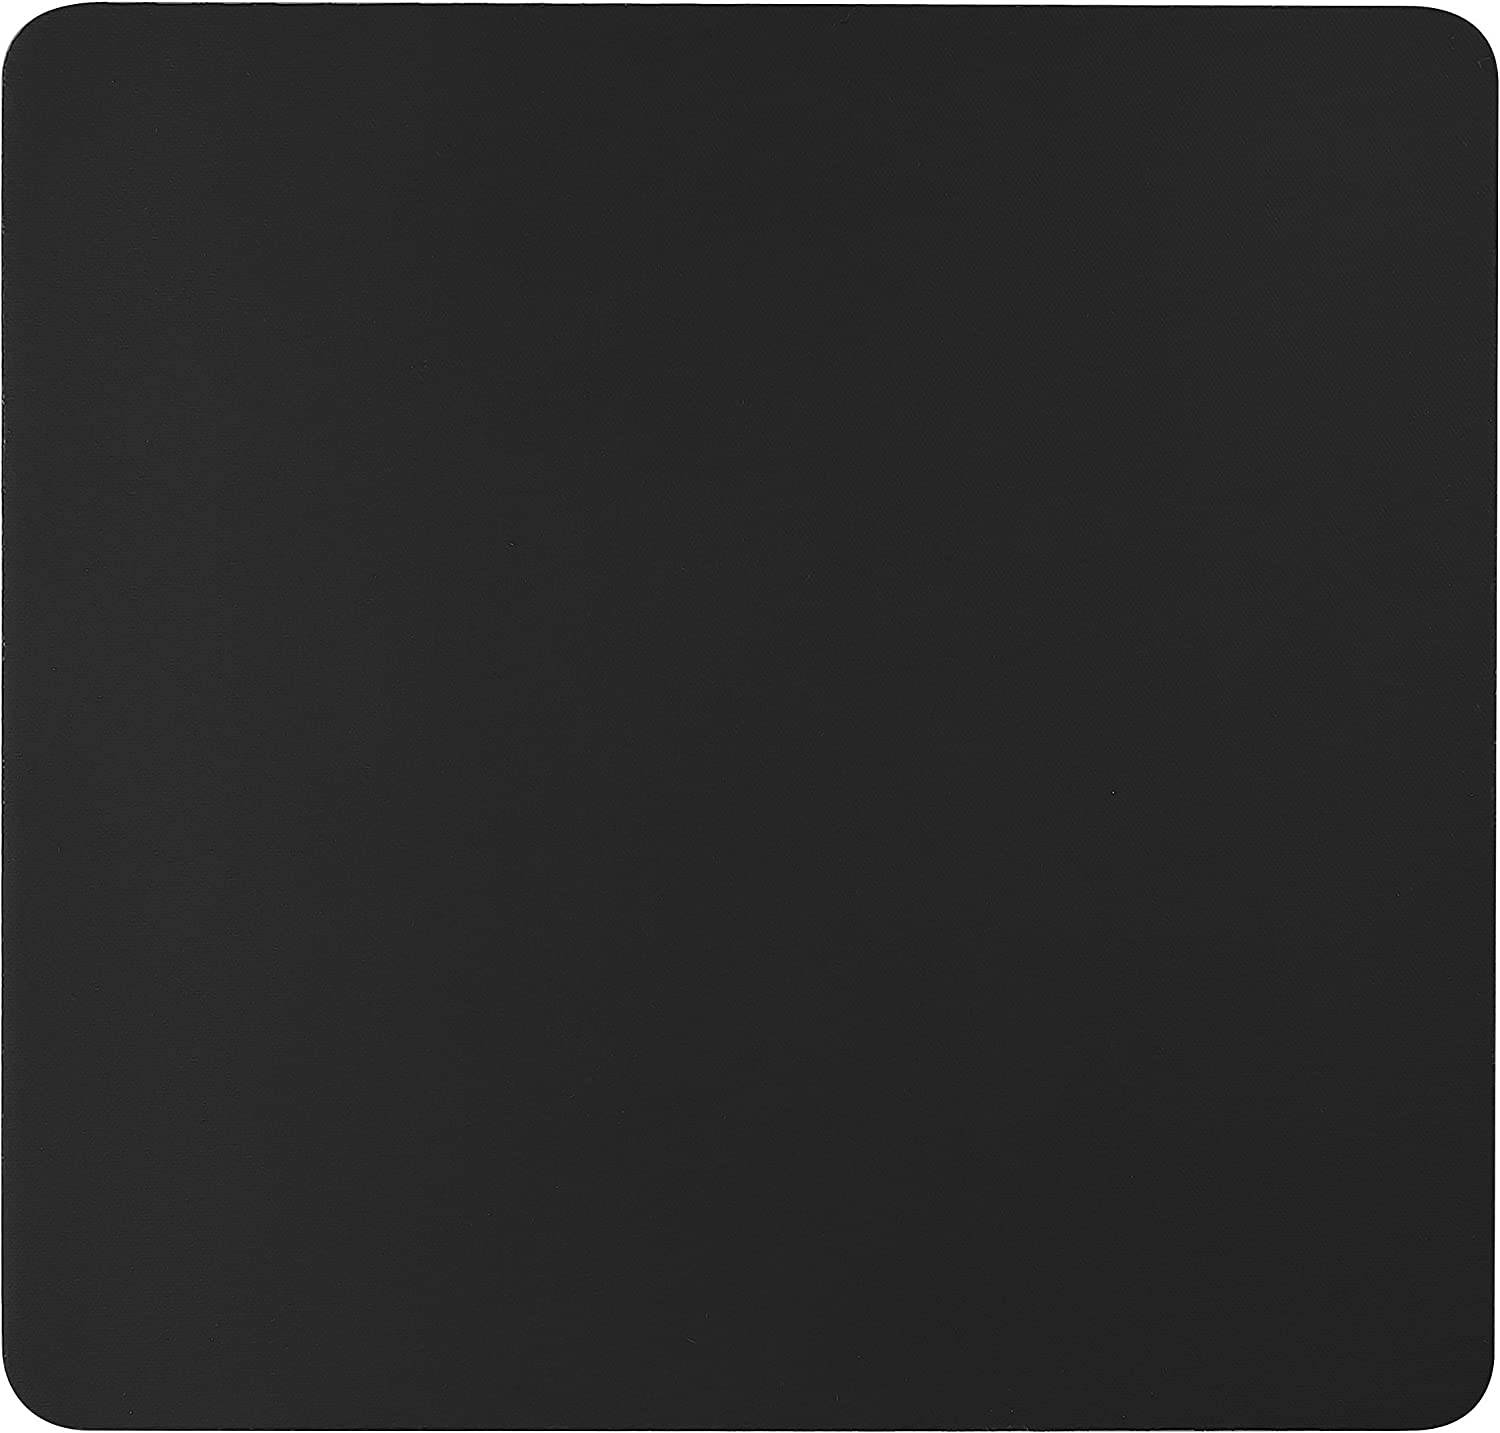 Quality Selection Comfortable Mouse Pad Black